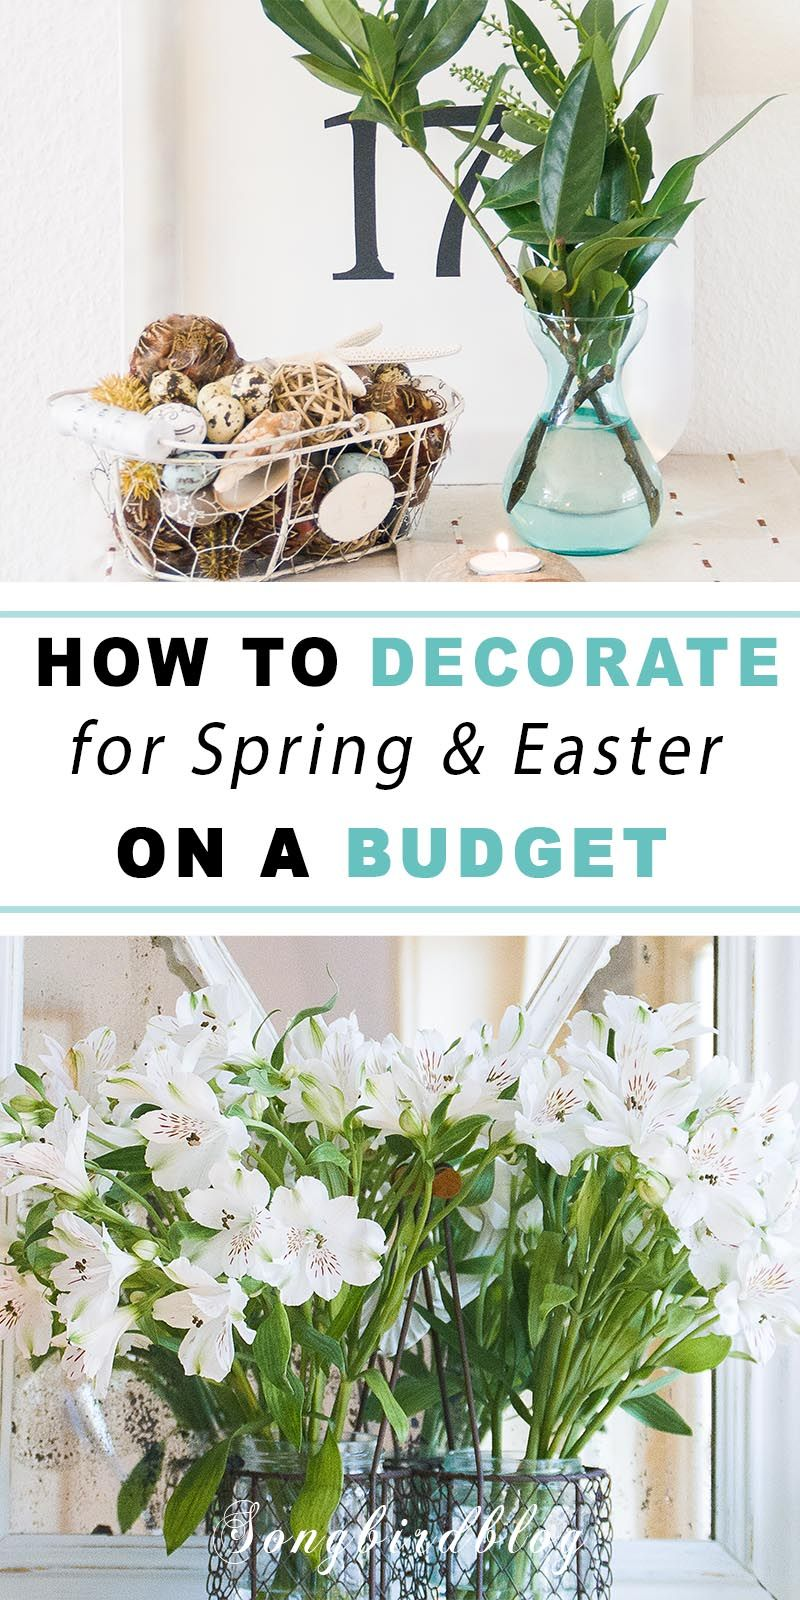 Spring Decorating Ideas For A Small Budget In 2020 Easy Spring Decorations Spring Decor Rustic Easter Decor